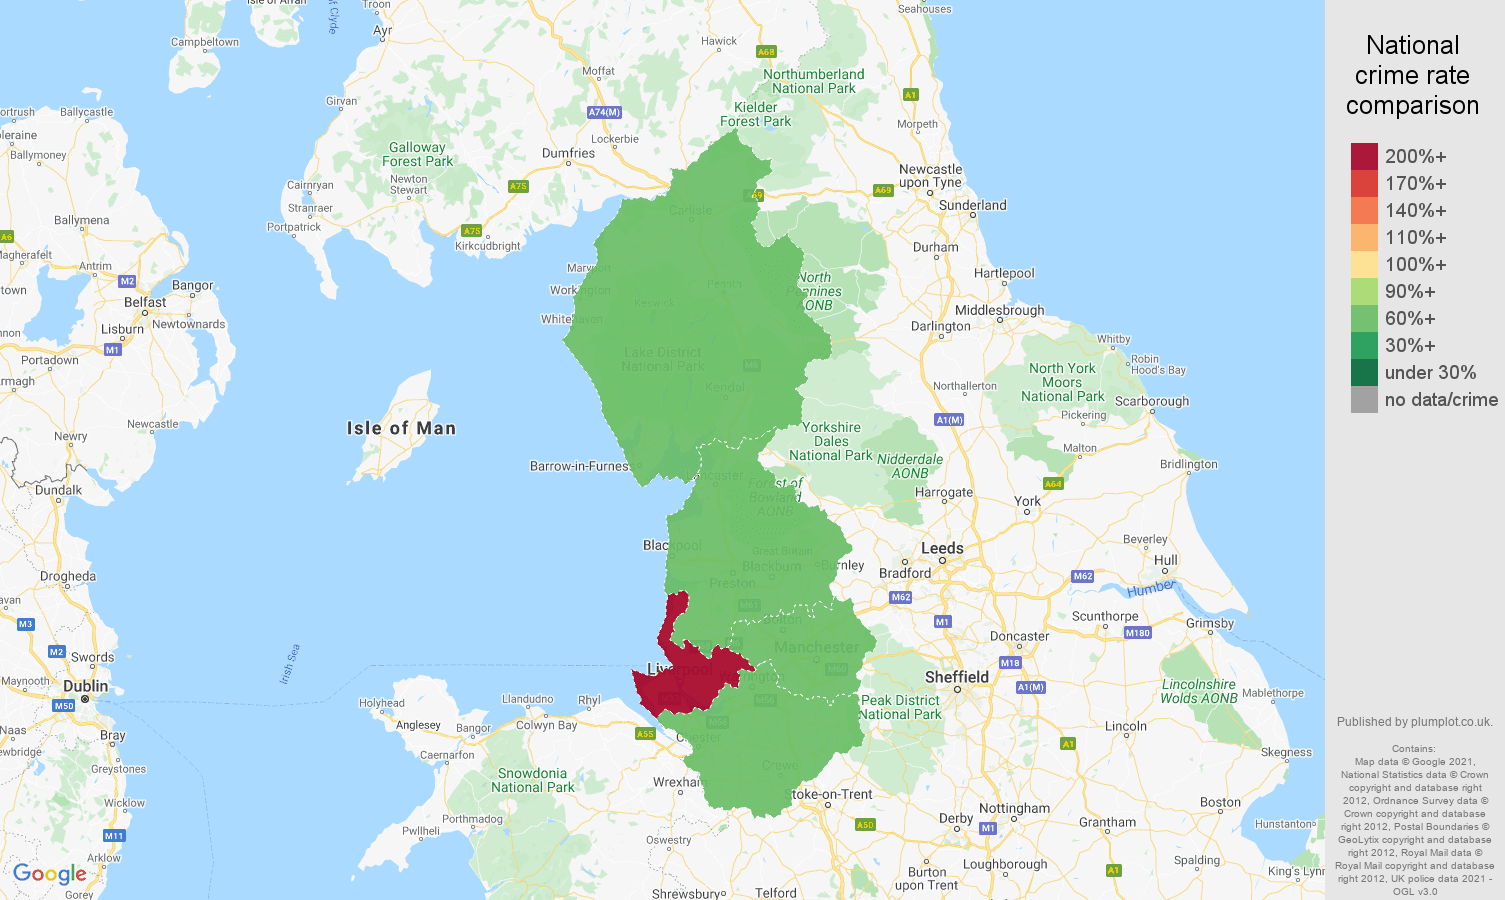 North West drugs crime rate comparison map